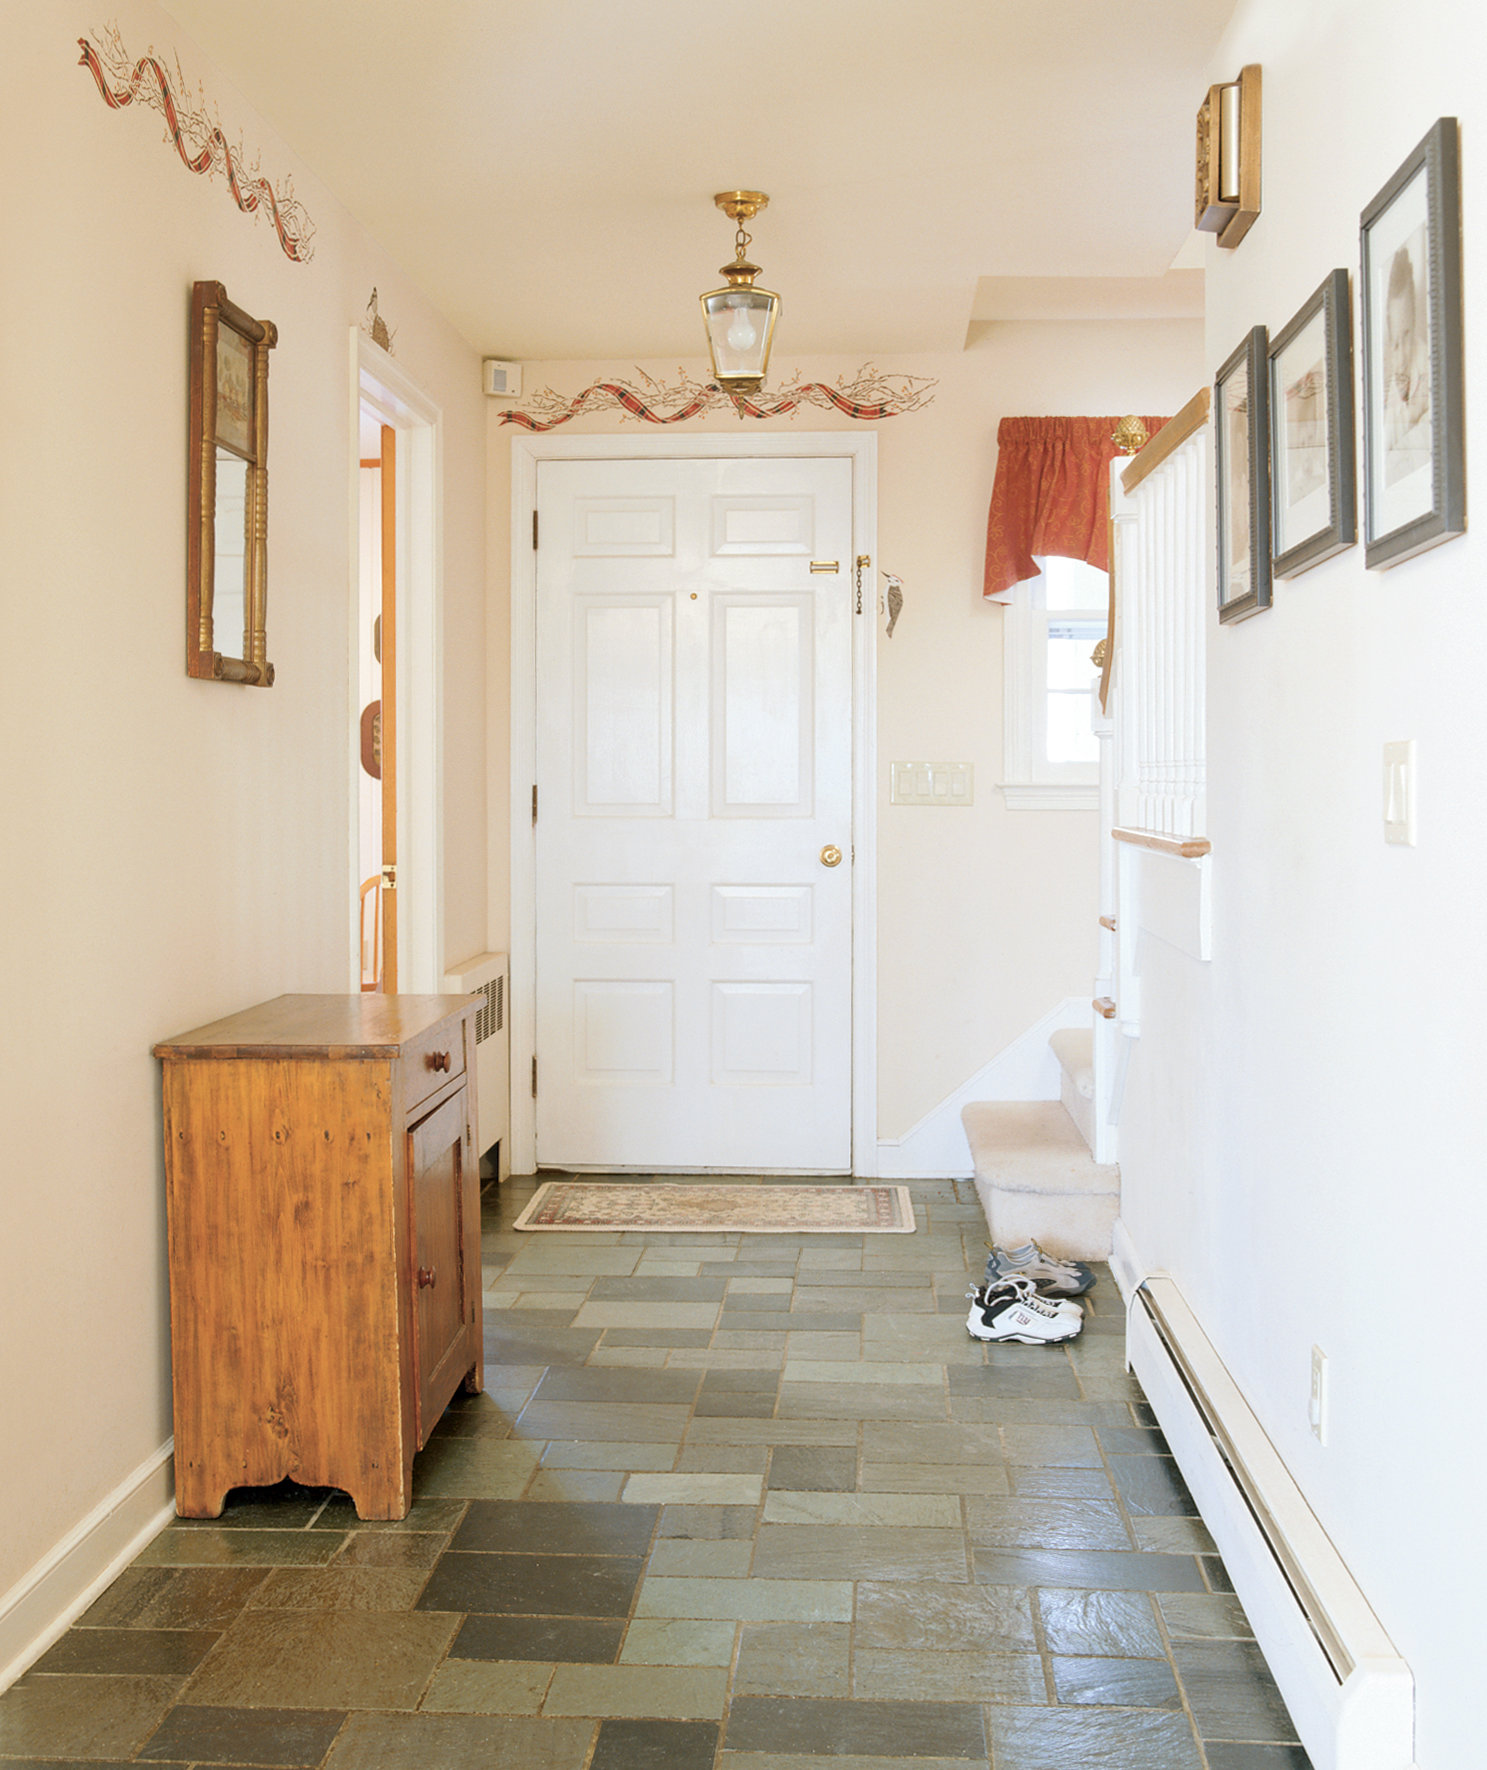 Room Before Foyer : Before and after room makeovers real simple